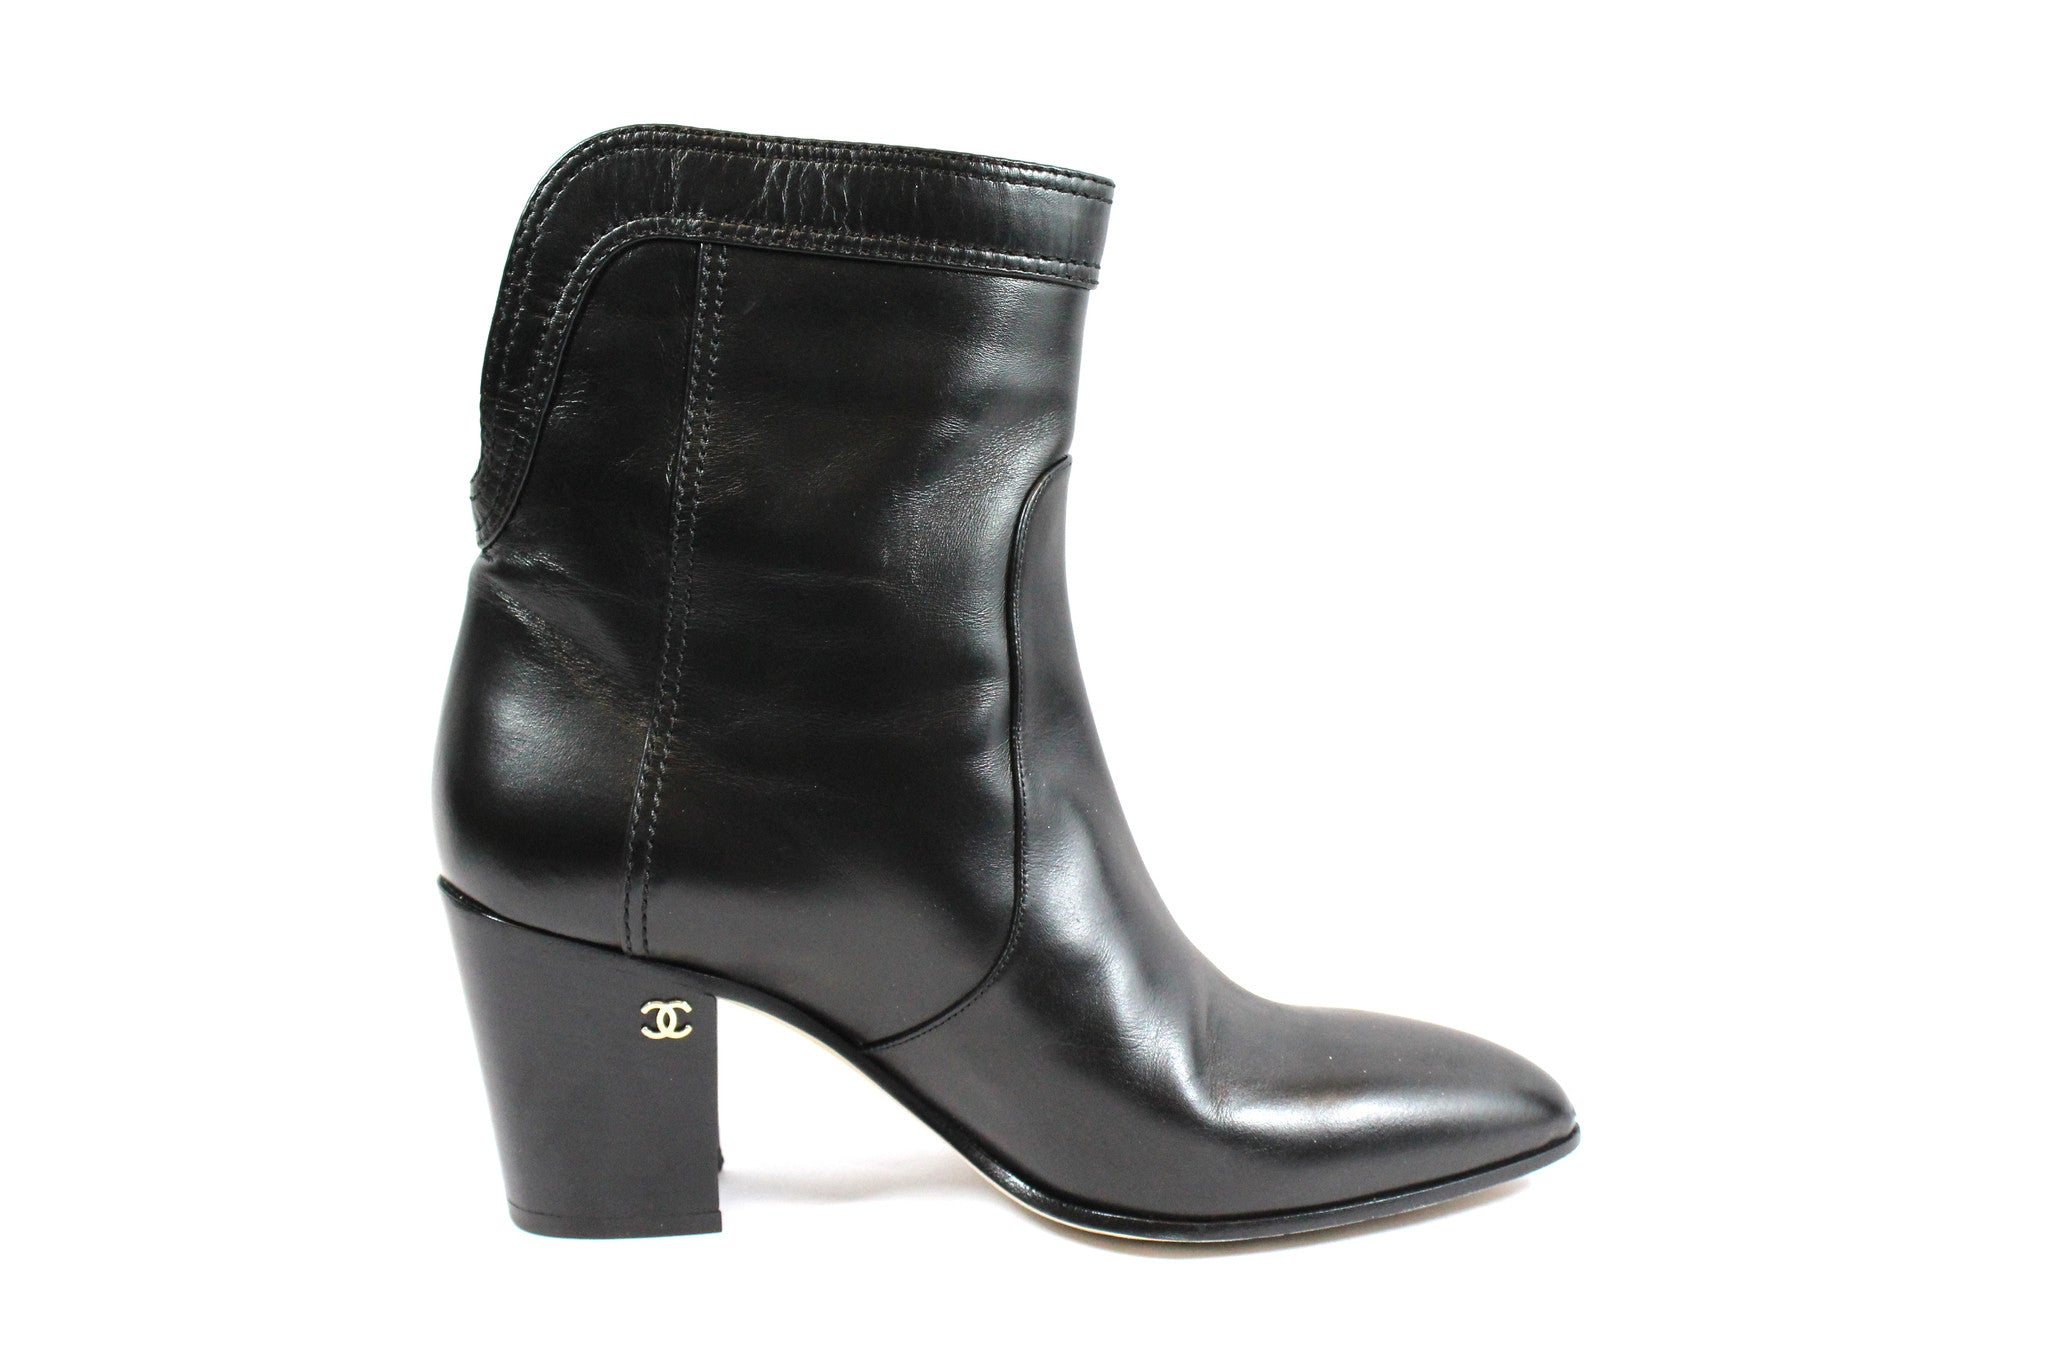 Chanel Calfskin Ankle Boots (Size 38) - Encore Consignment - 5